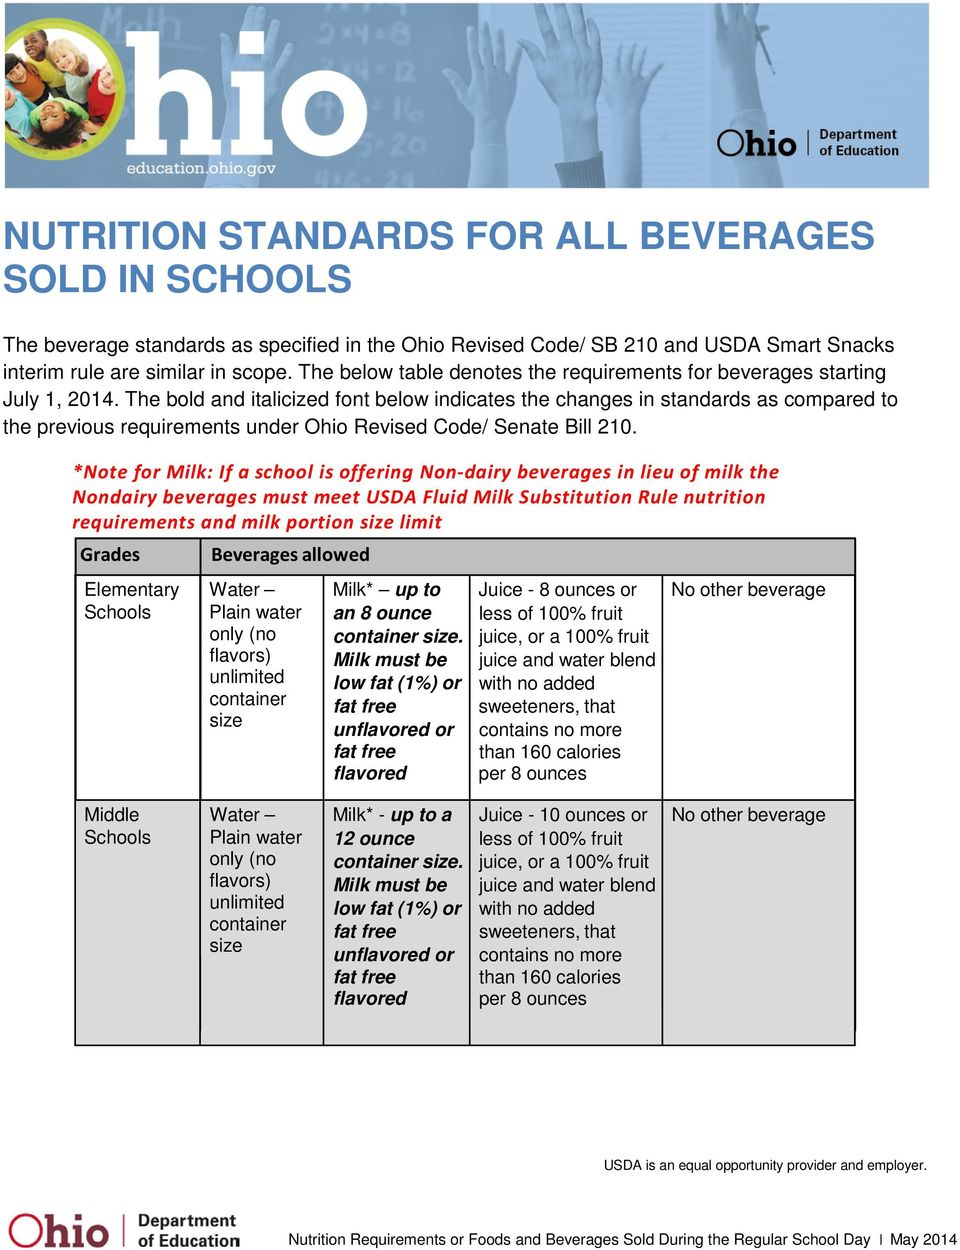 *Note for Milk: If a school is offering Non-dairy beverages in lieu of milk the Nondairy beverages must meet USDA Fluid Milk Substitution Rule nutrition requirements and milk portion size limit